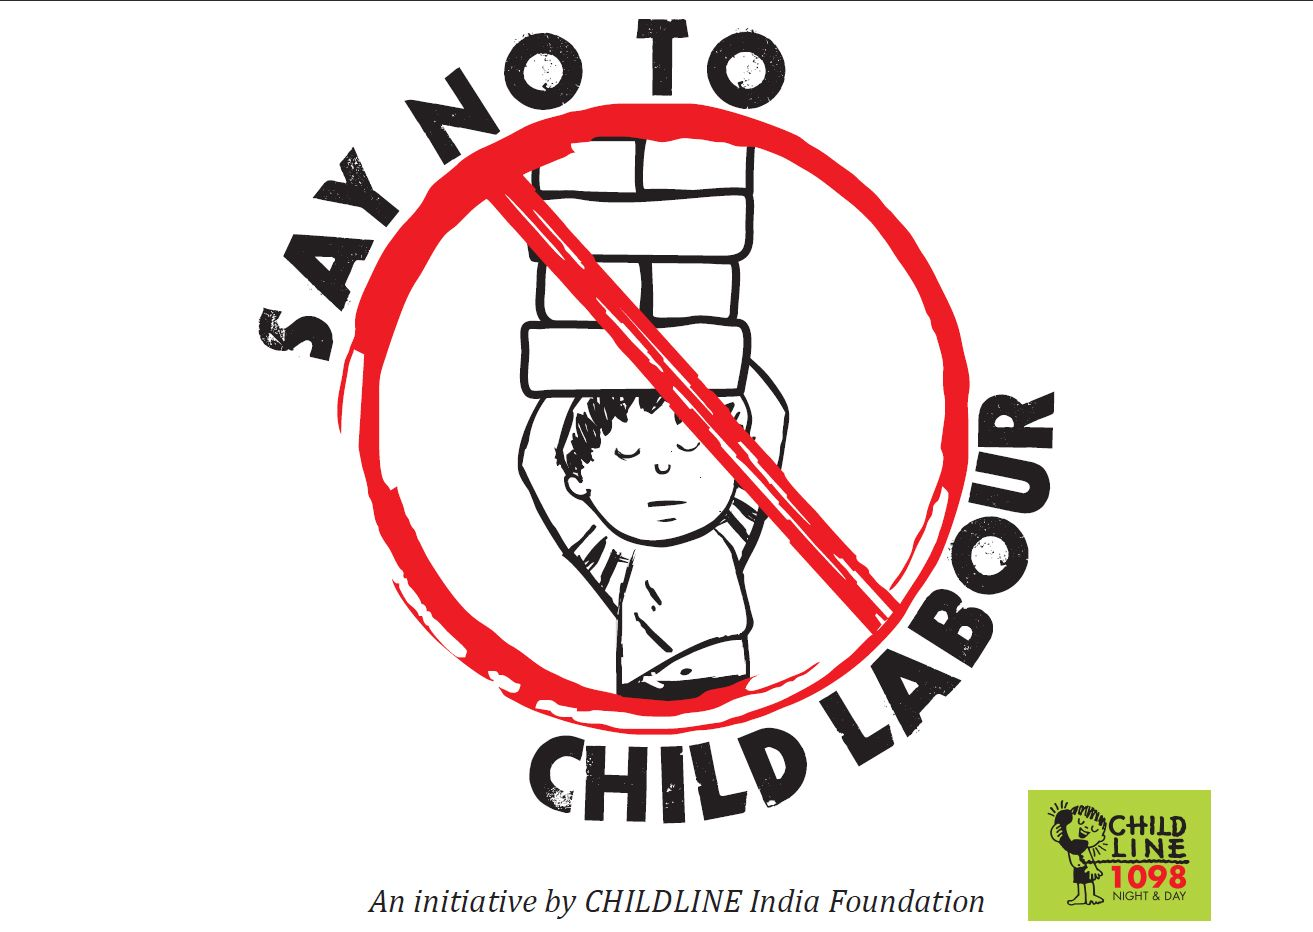 child labour in accounts for the second highest child labor in a survey analysis